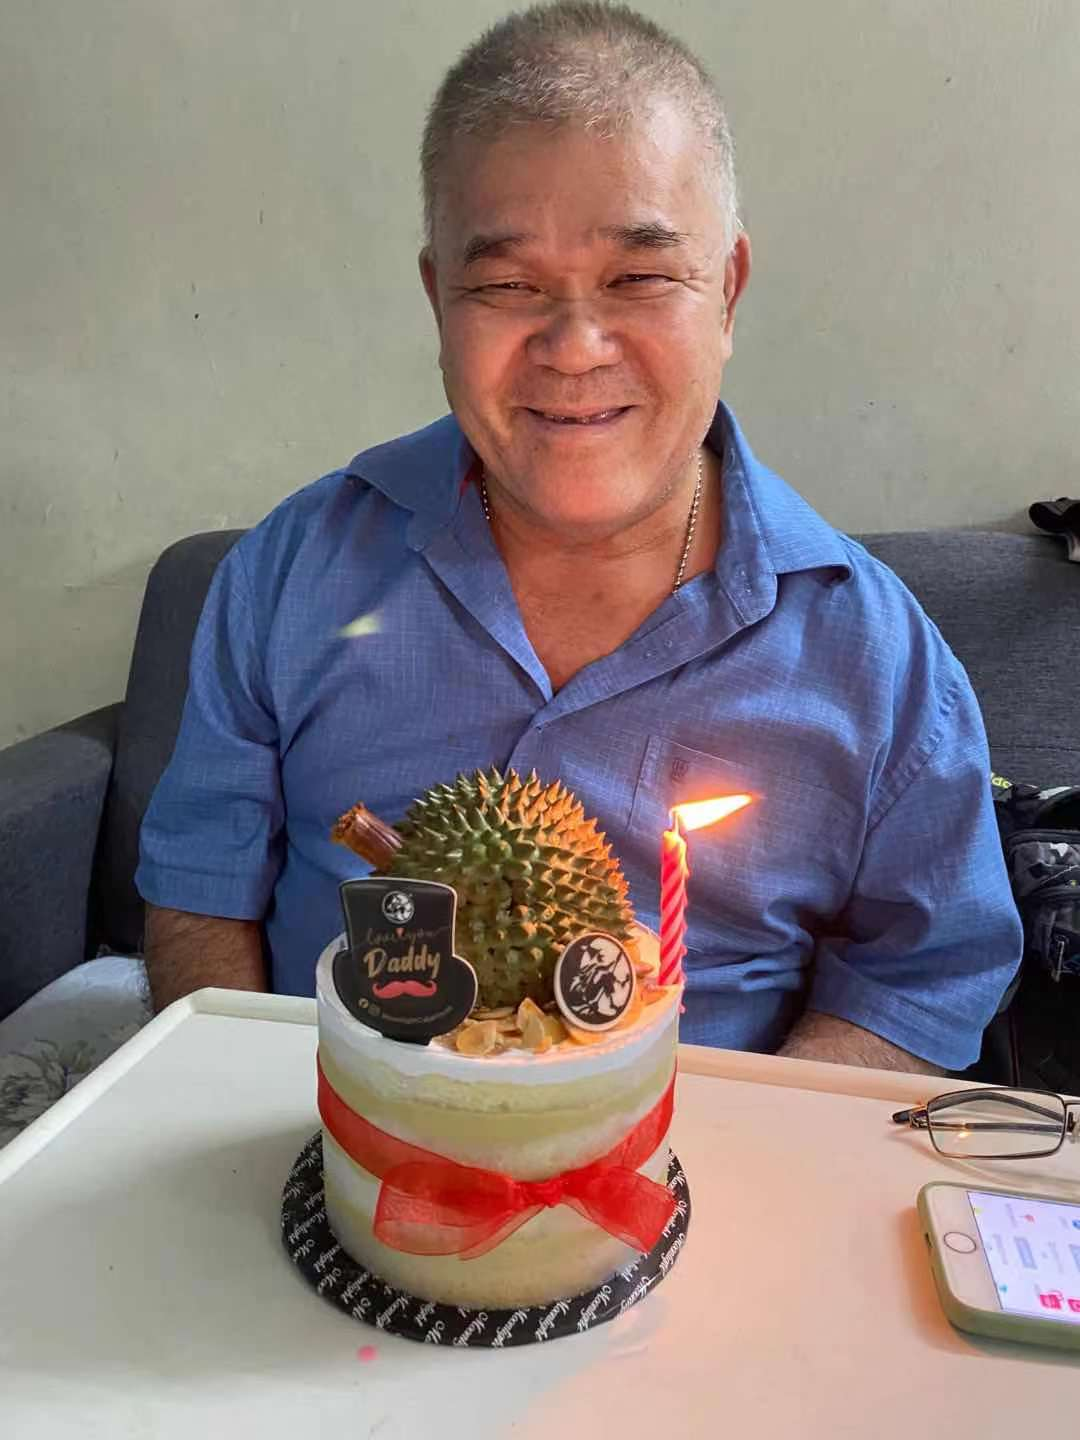 Ng King Hu, smiles in front of a cake which has a single lit candle, a durian replica and the words 'Daddy'.